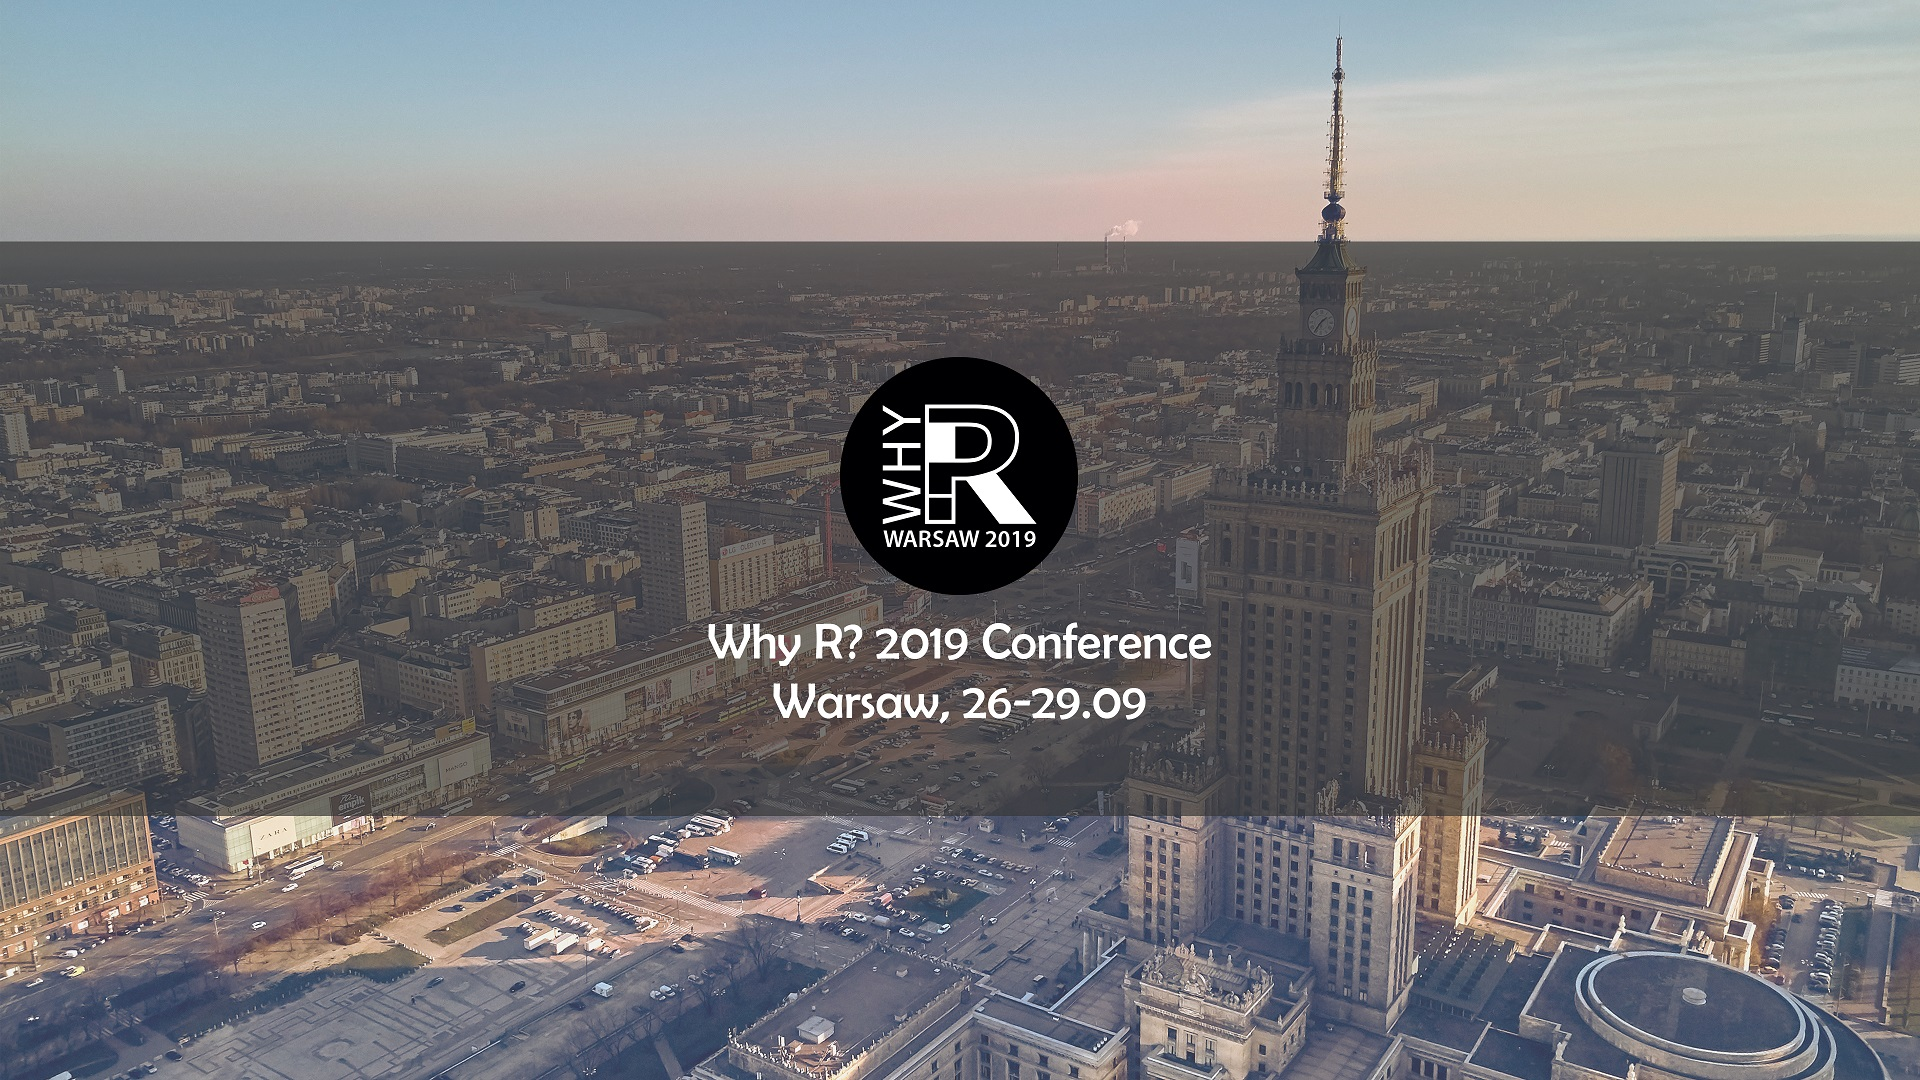 Why R? 2019 Conference – Registration and Call for Papers Opened